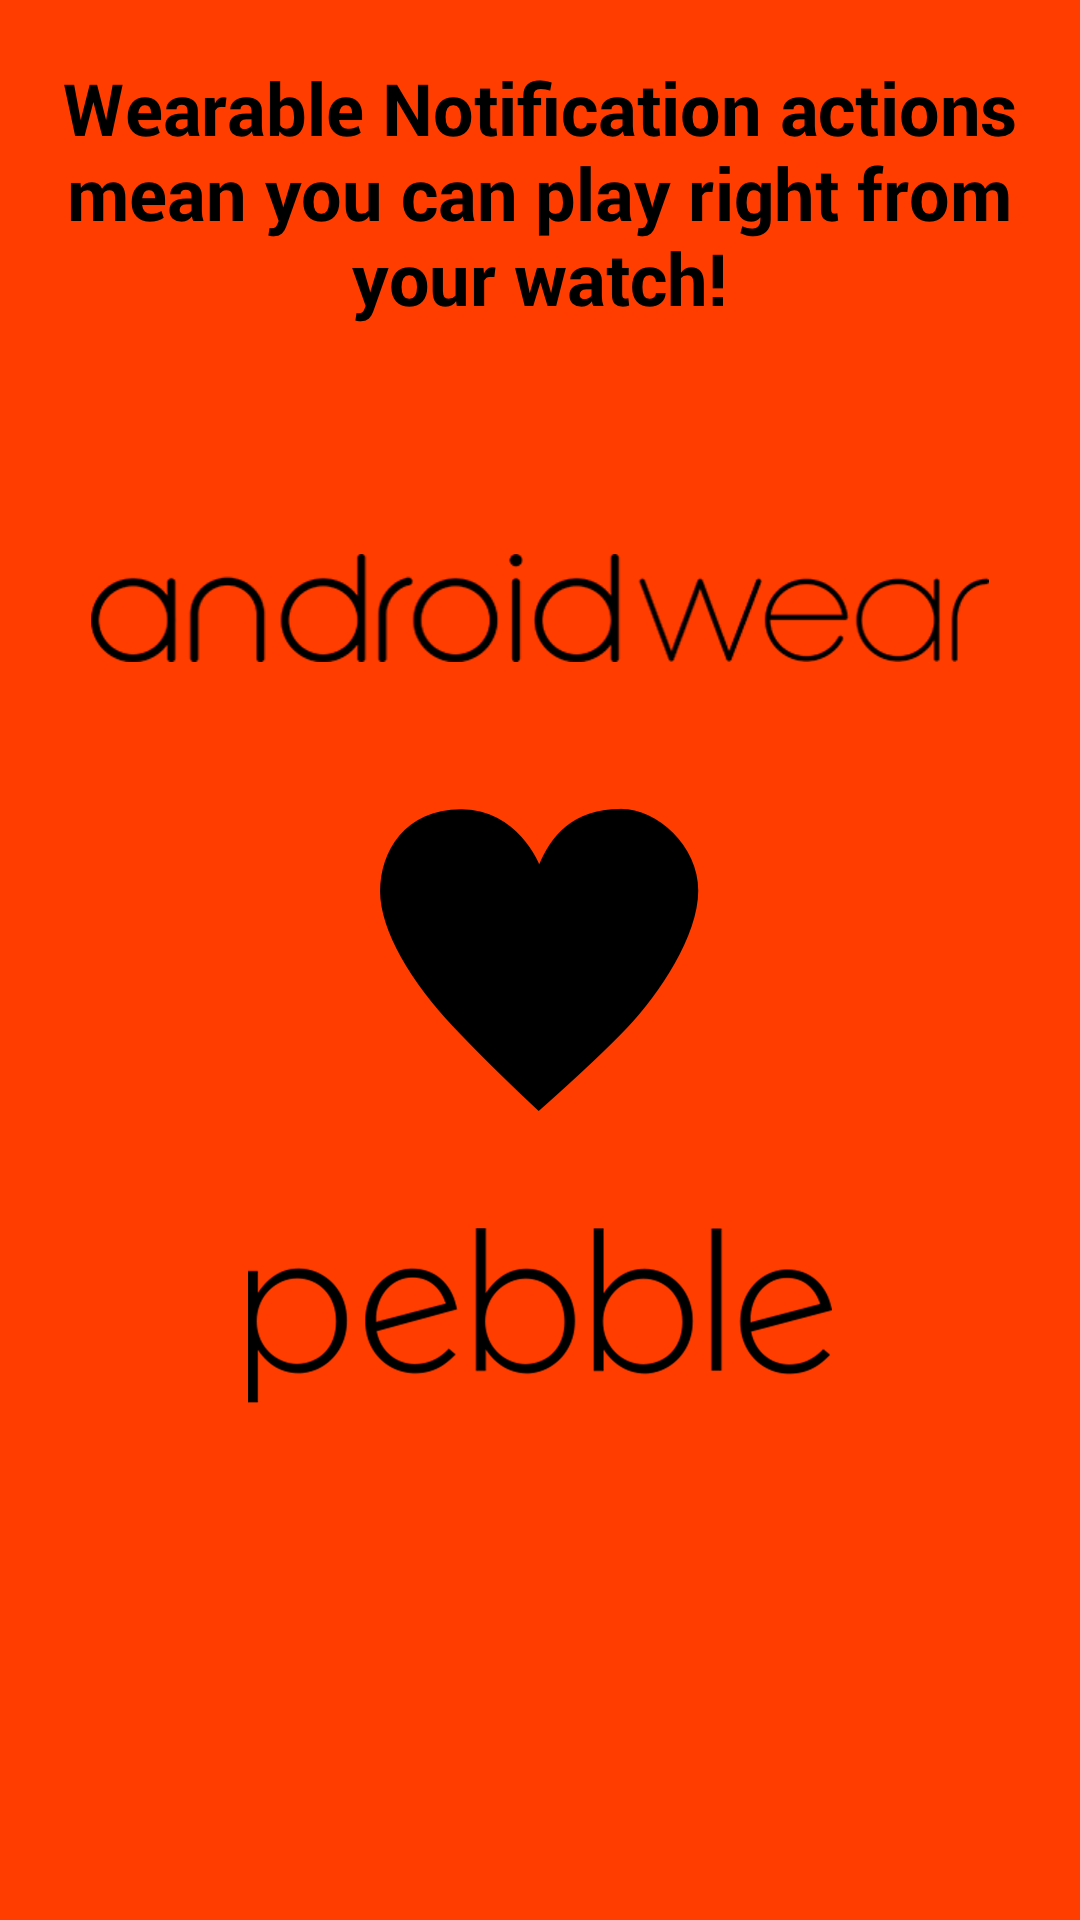 Wearable Compatibility